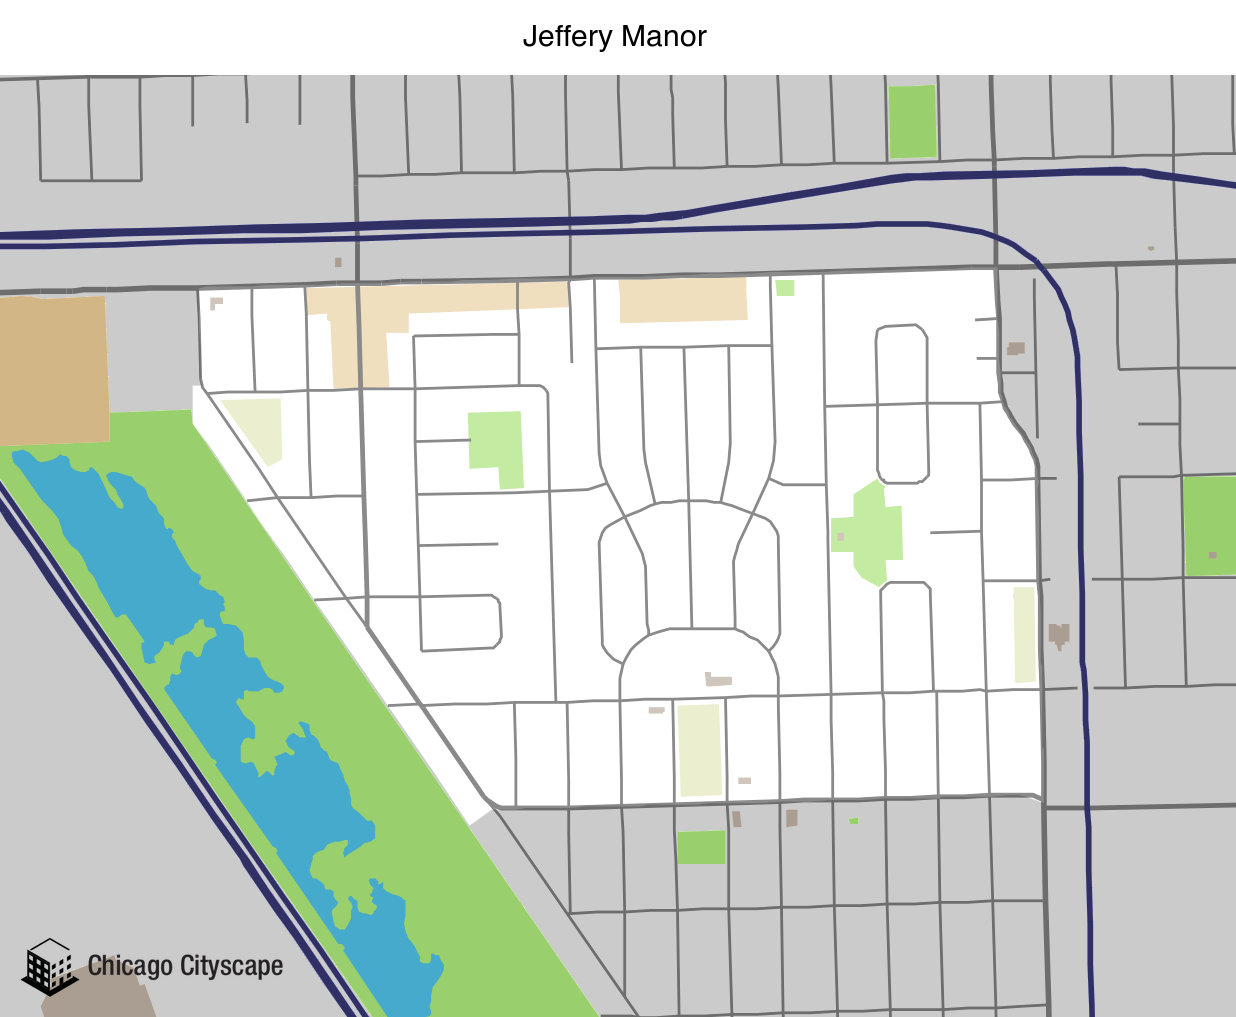 Map of Jeffery Manor Neighborhood designed by Chicago Cityscape